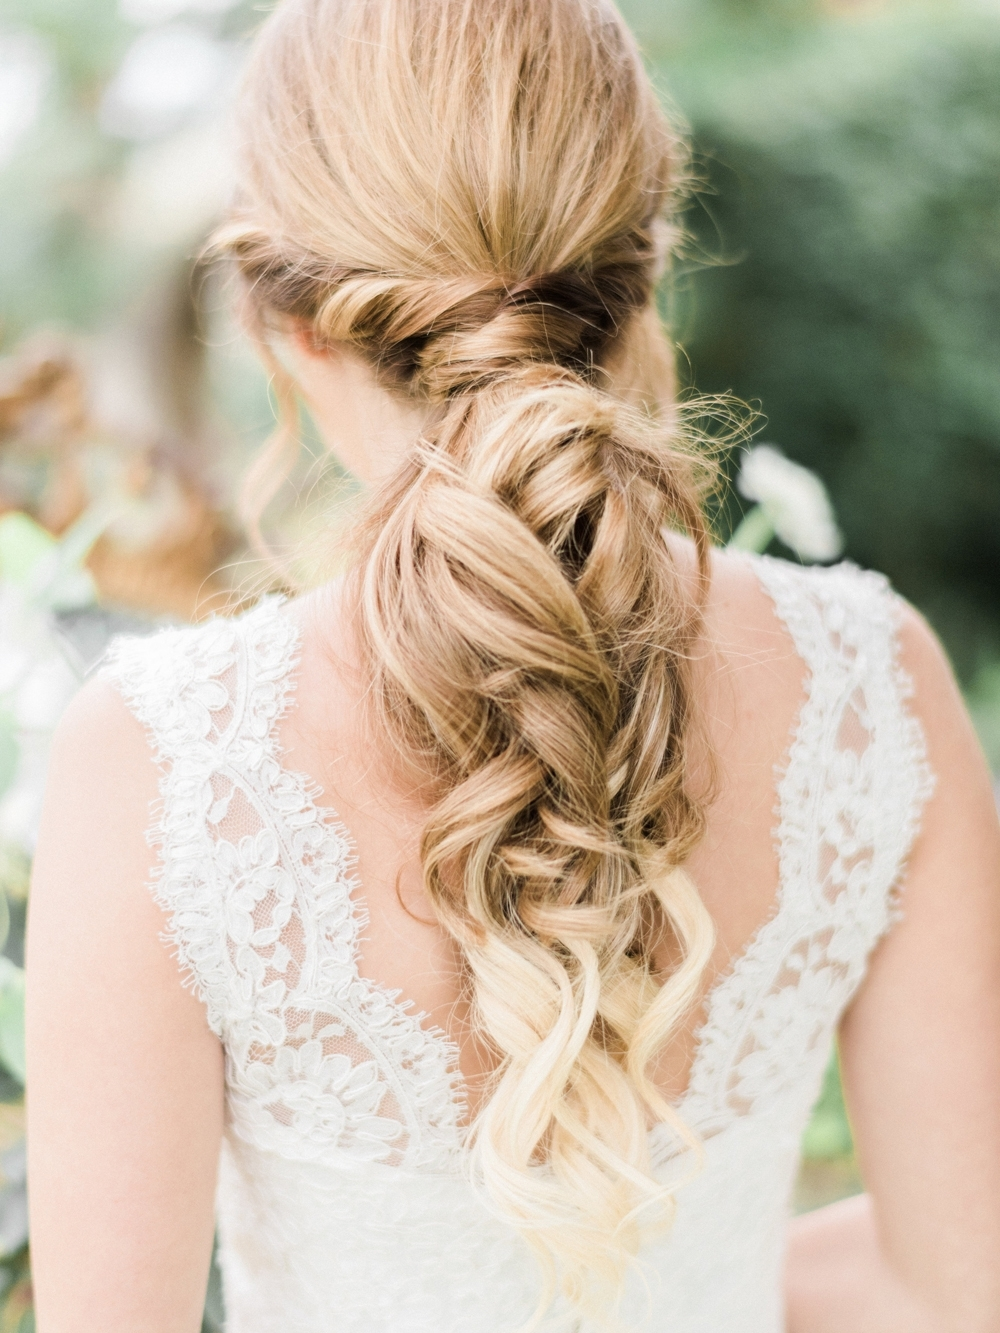 Fashionable Relaxed Wedding Hairstyles Throughout Wedding Hair: Pretty Hairstyles For Brides With Long Hair – Inside (View 14 of 15)